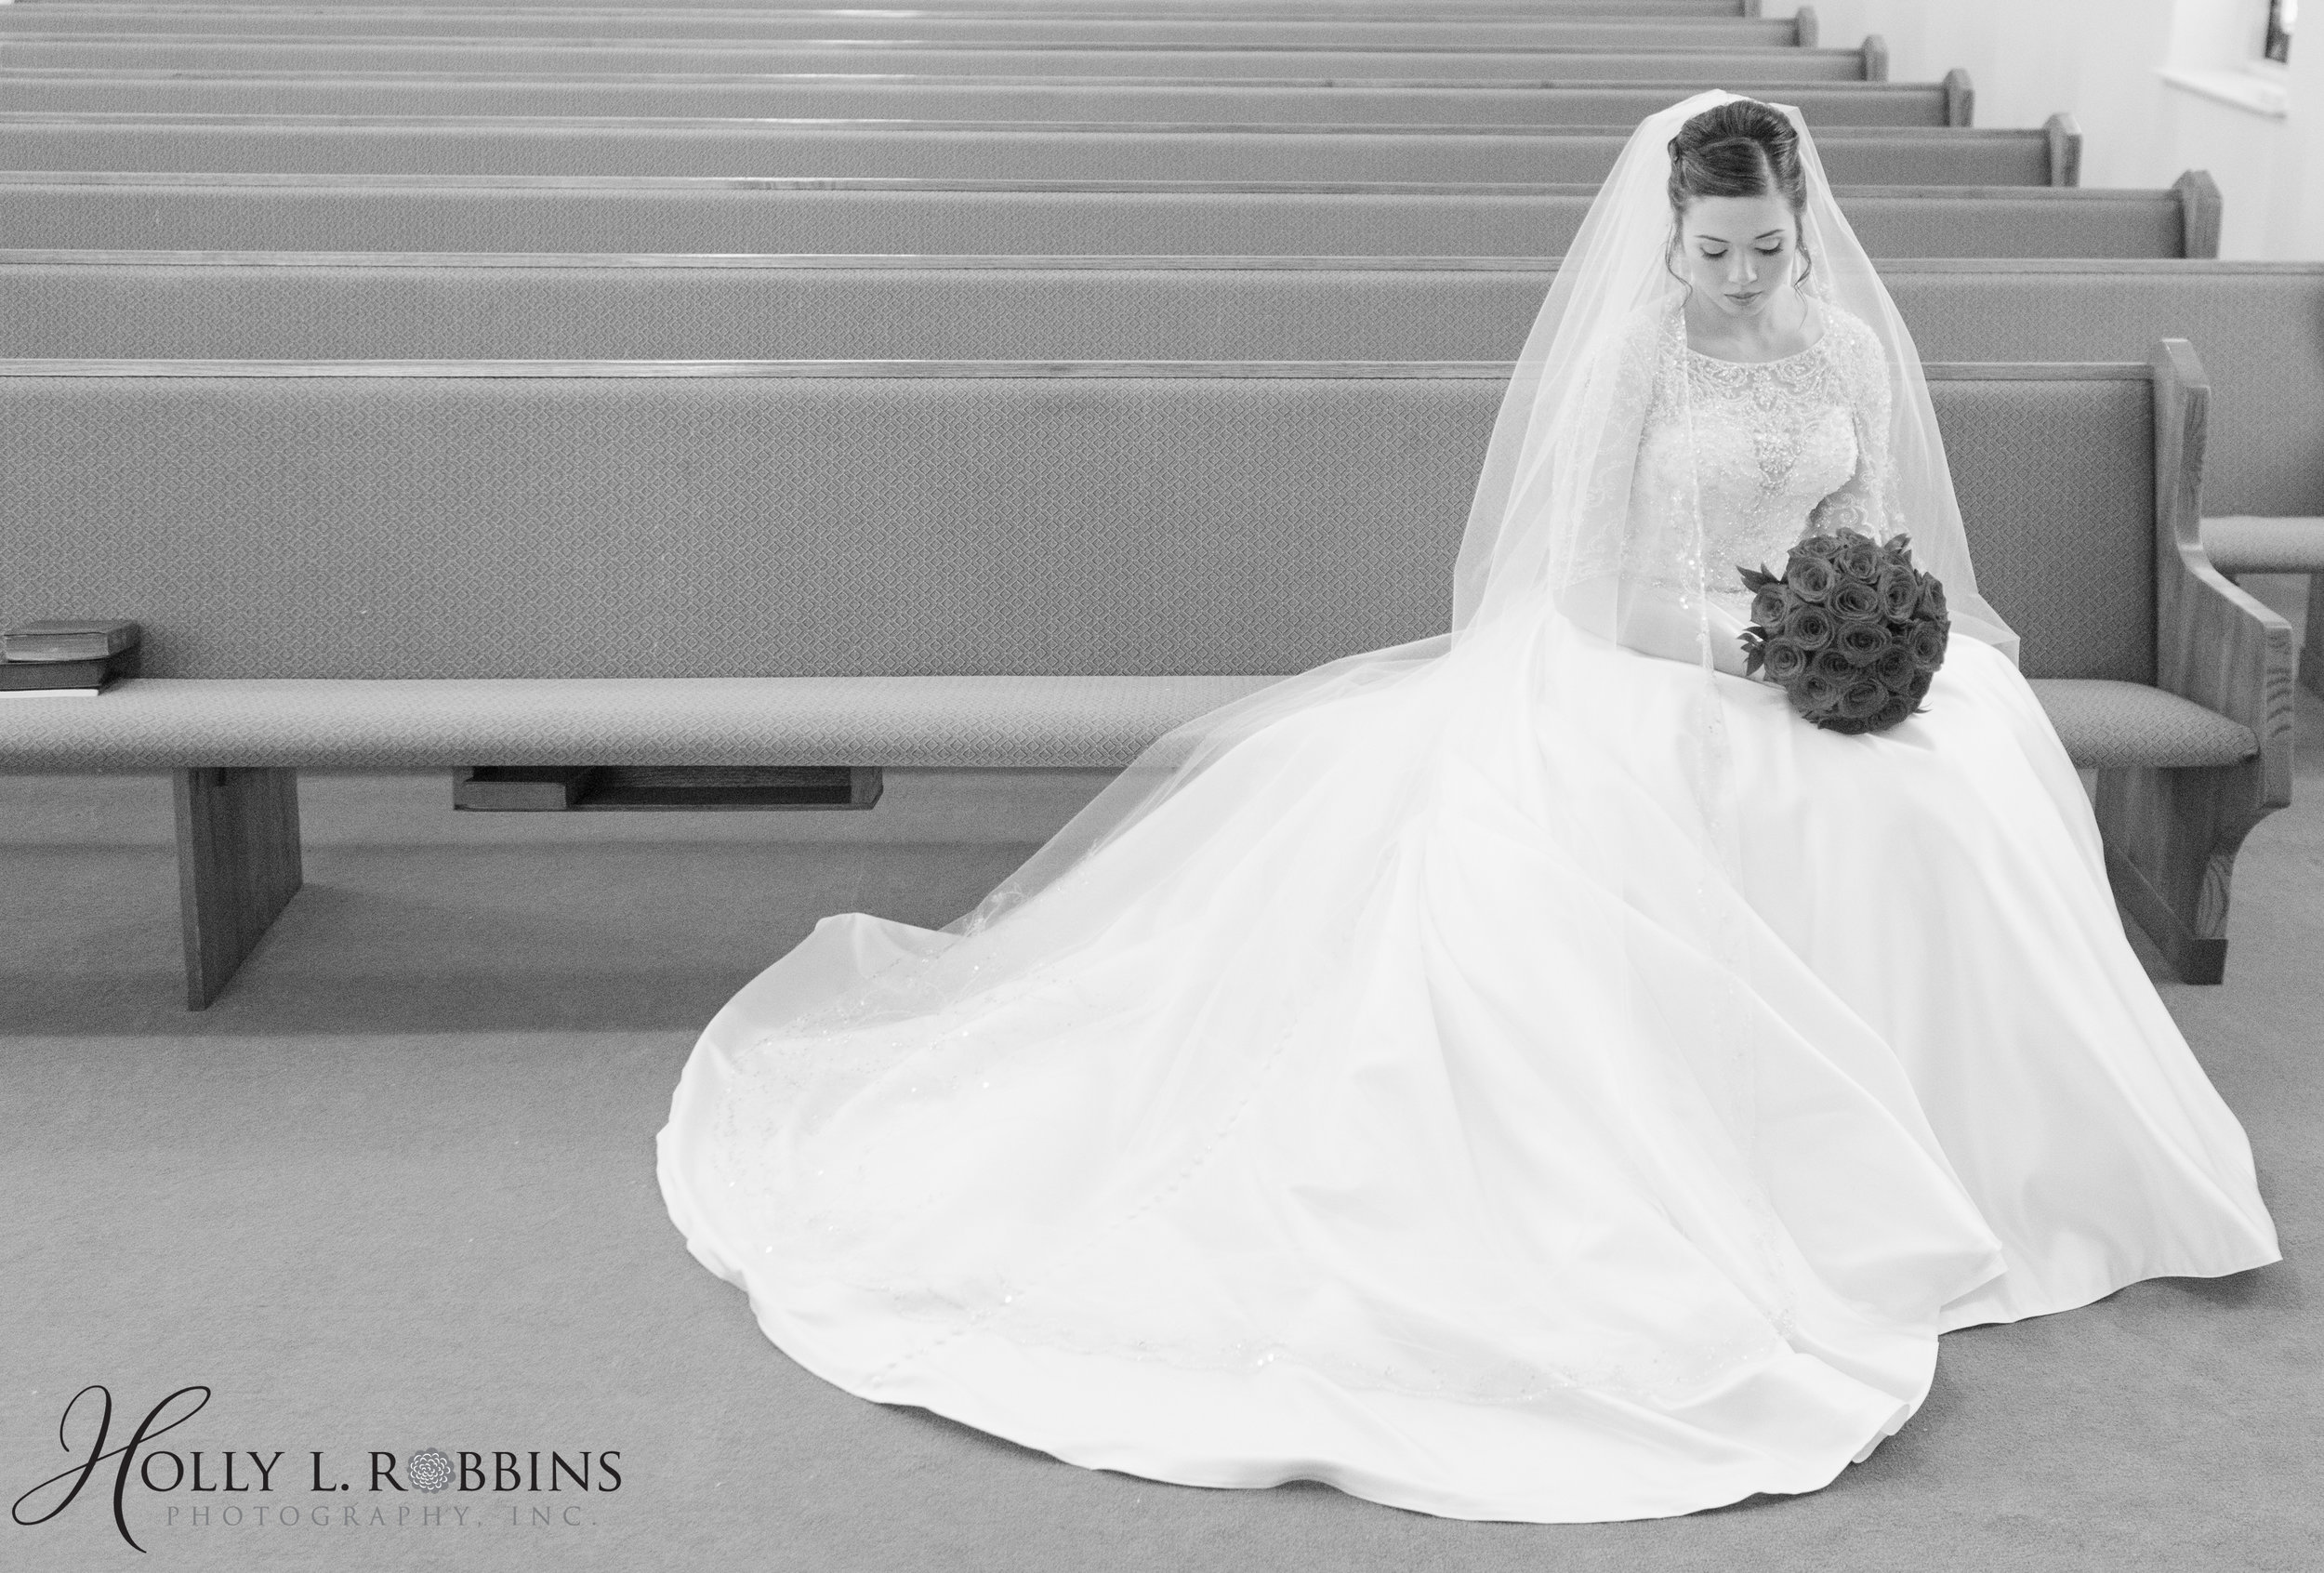 monroe_georgia_wedding_photographers-76